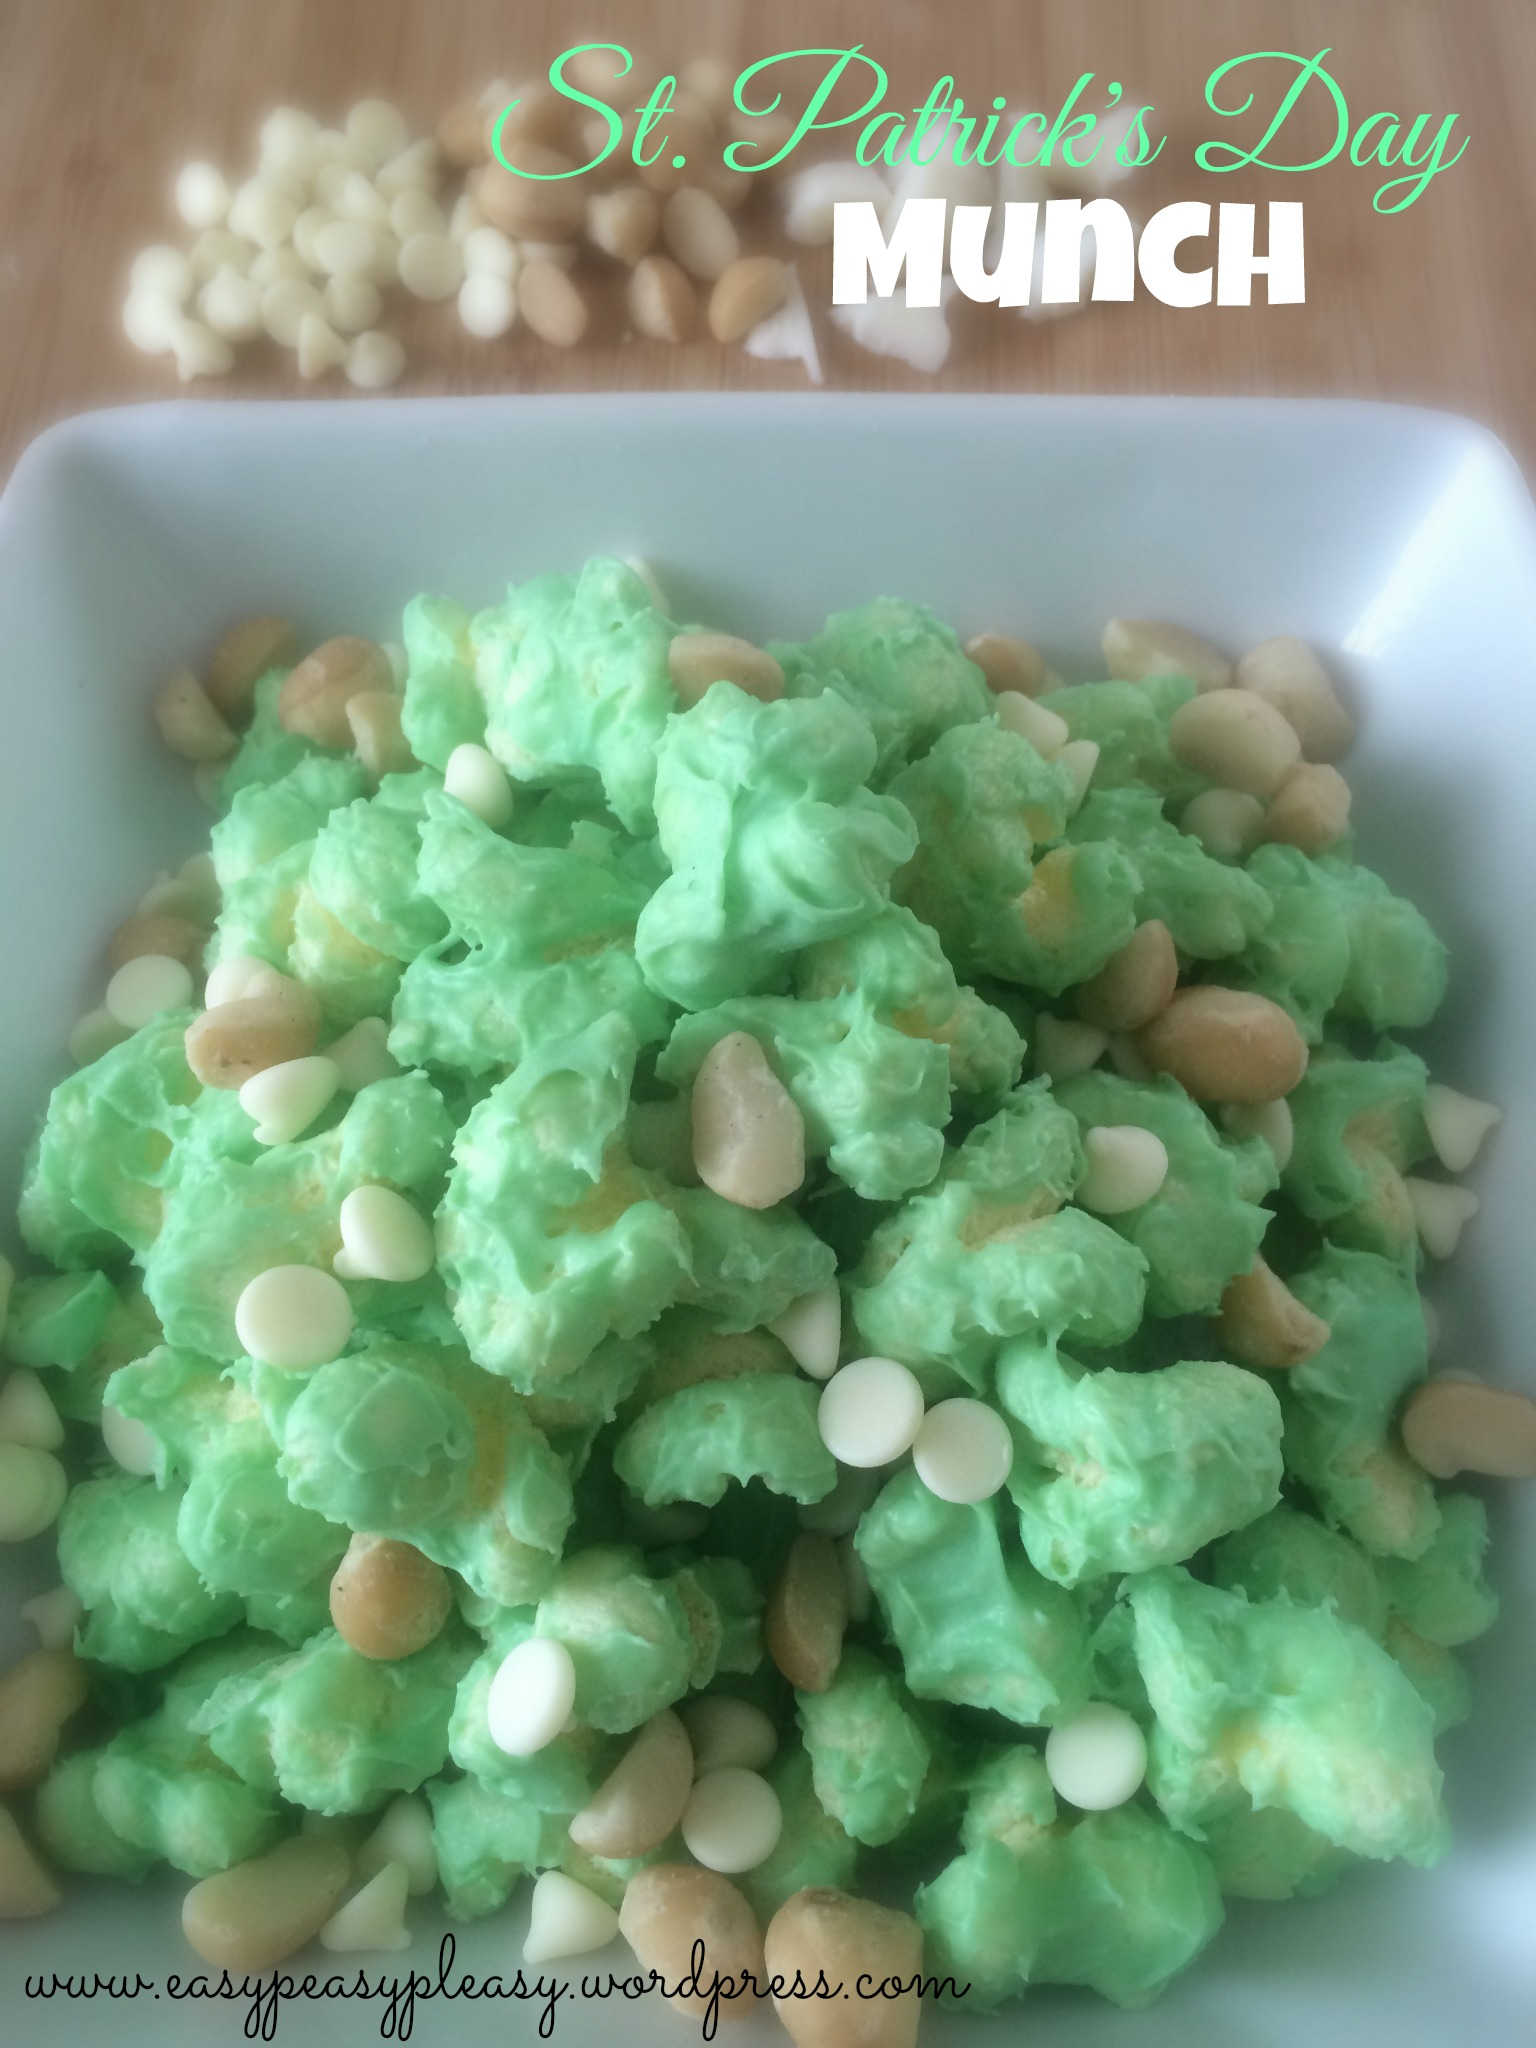 Quick St. Patrick's Day Munch Snack Idea at www.easypeasypleasy.wordpress.com